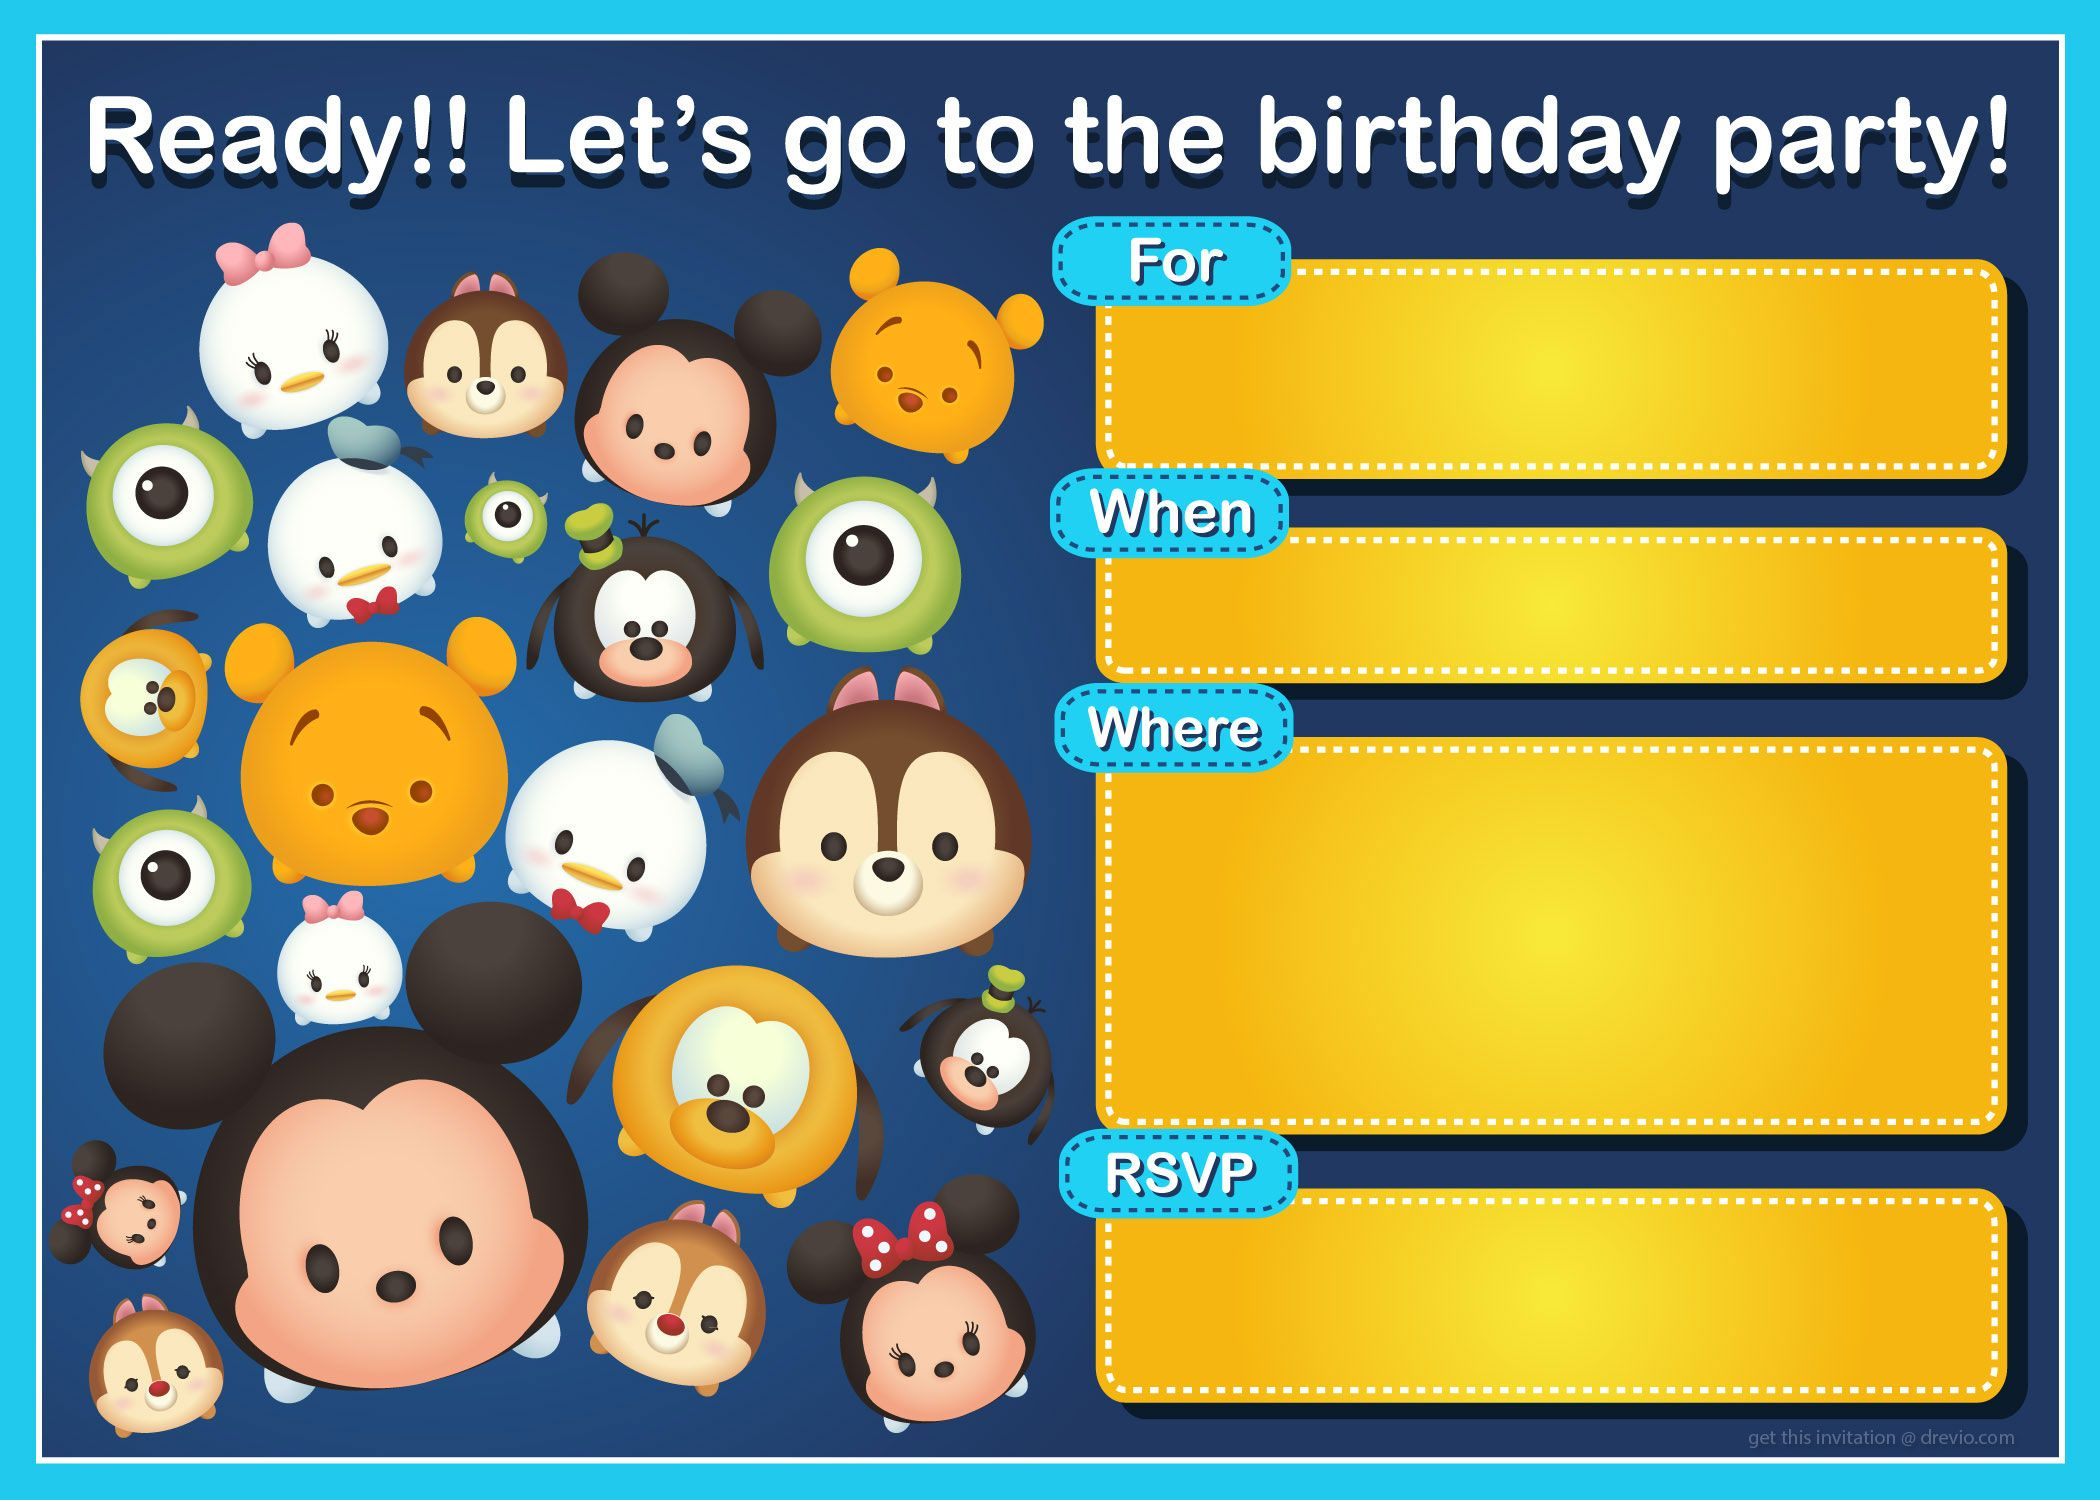 Free Printable Disney S Tsum Tsum Birthday Invitation Template Birthday Invitation Templates Birthday Card Template Party Invite Template